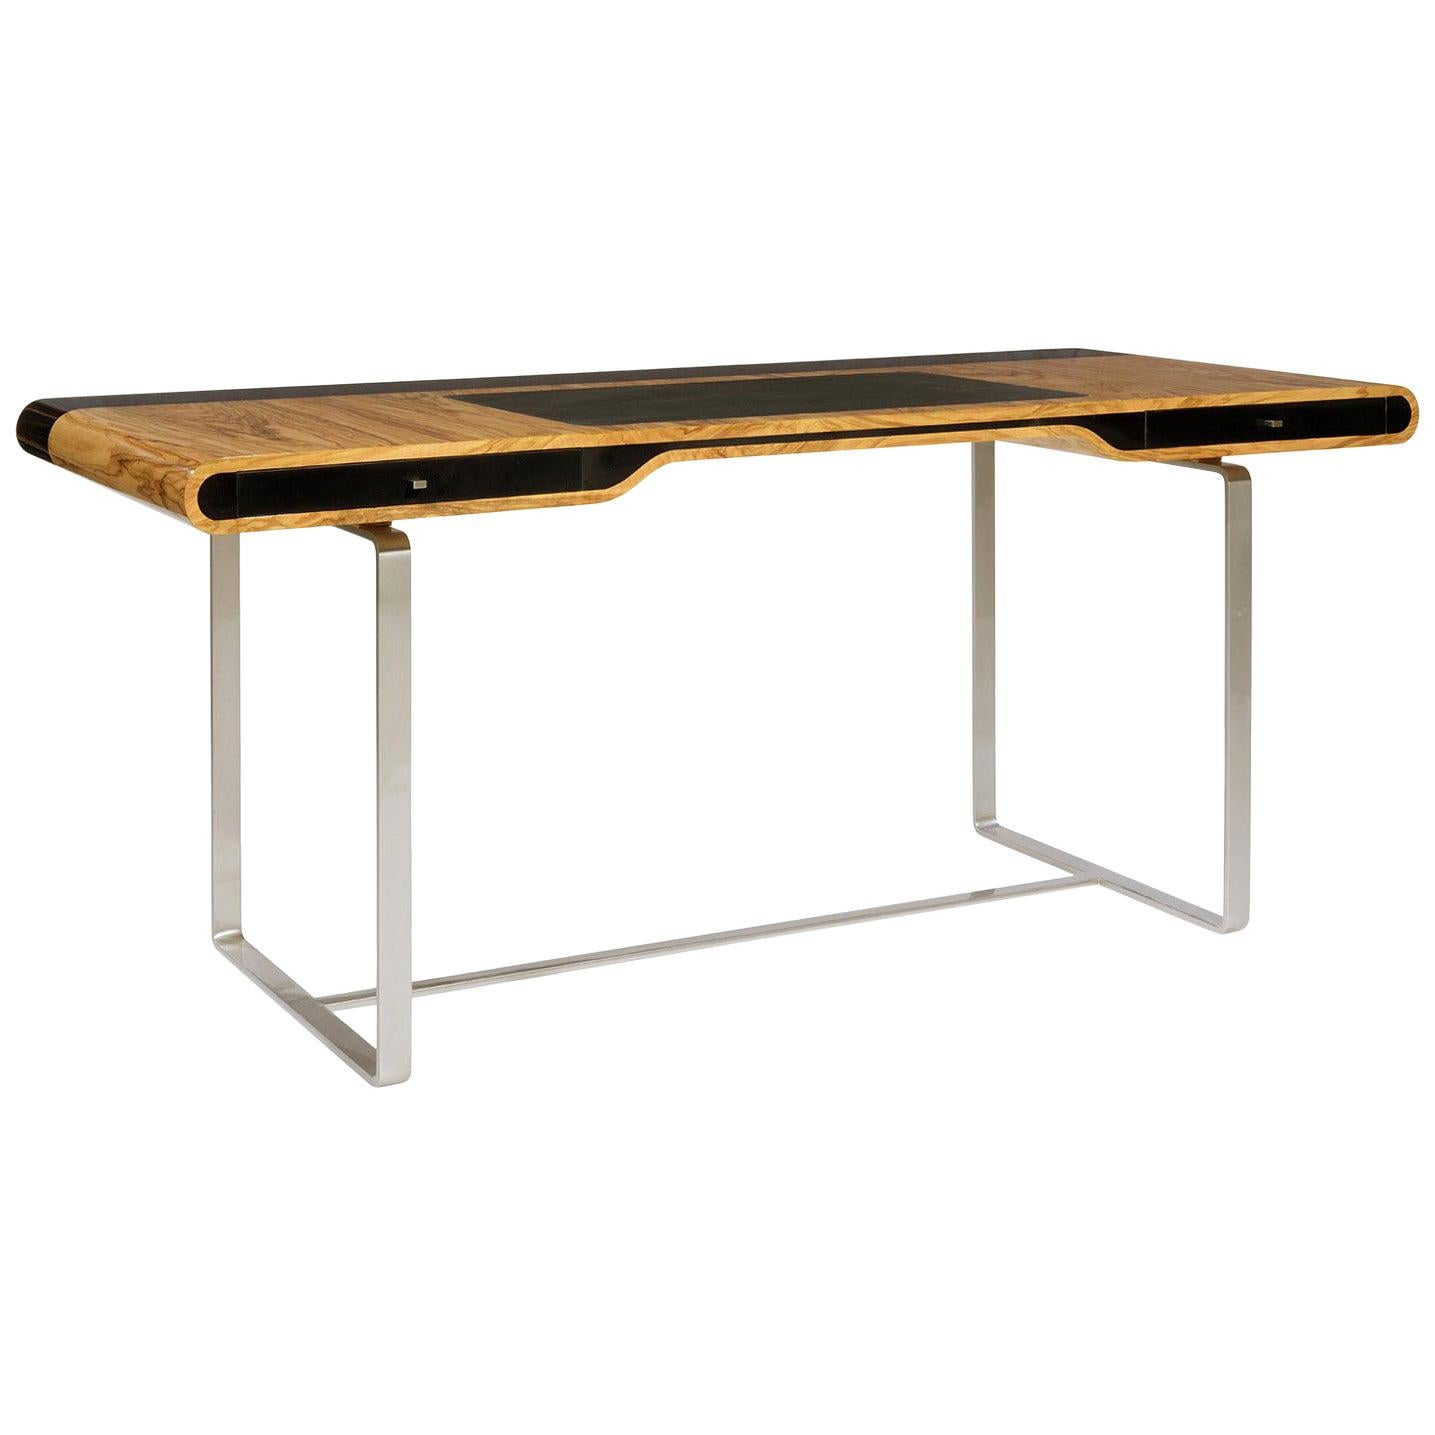 Little Shanghai Desk in Olive Wood and Black Sycamore Silver Painted Leg